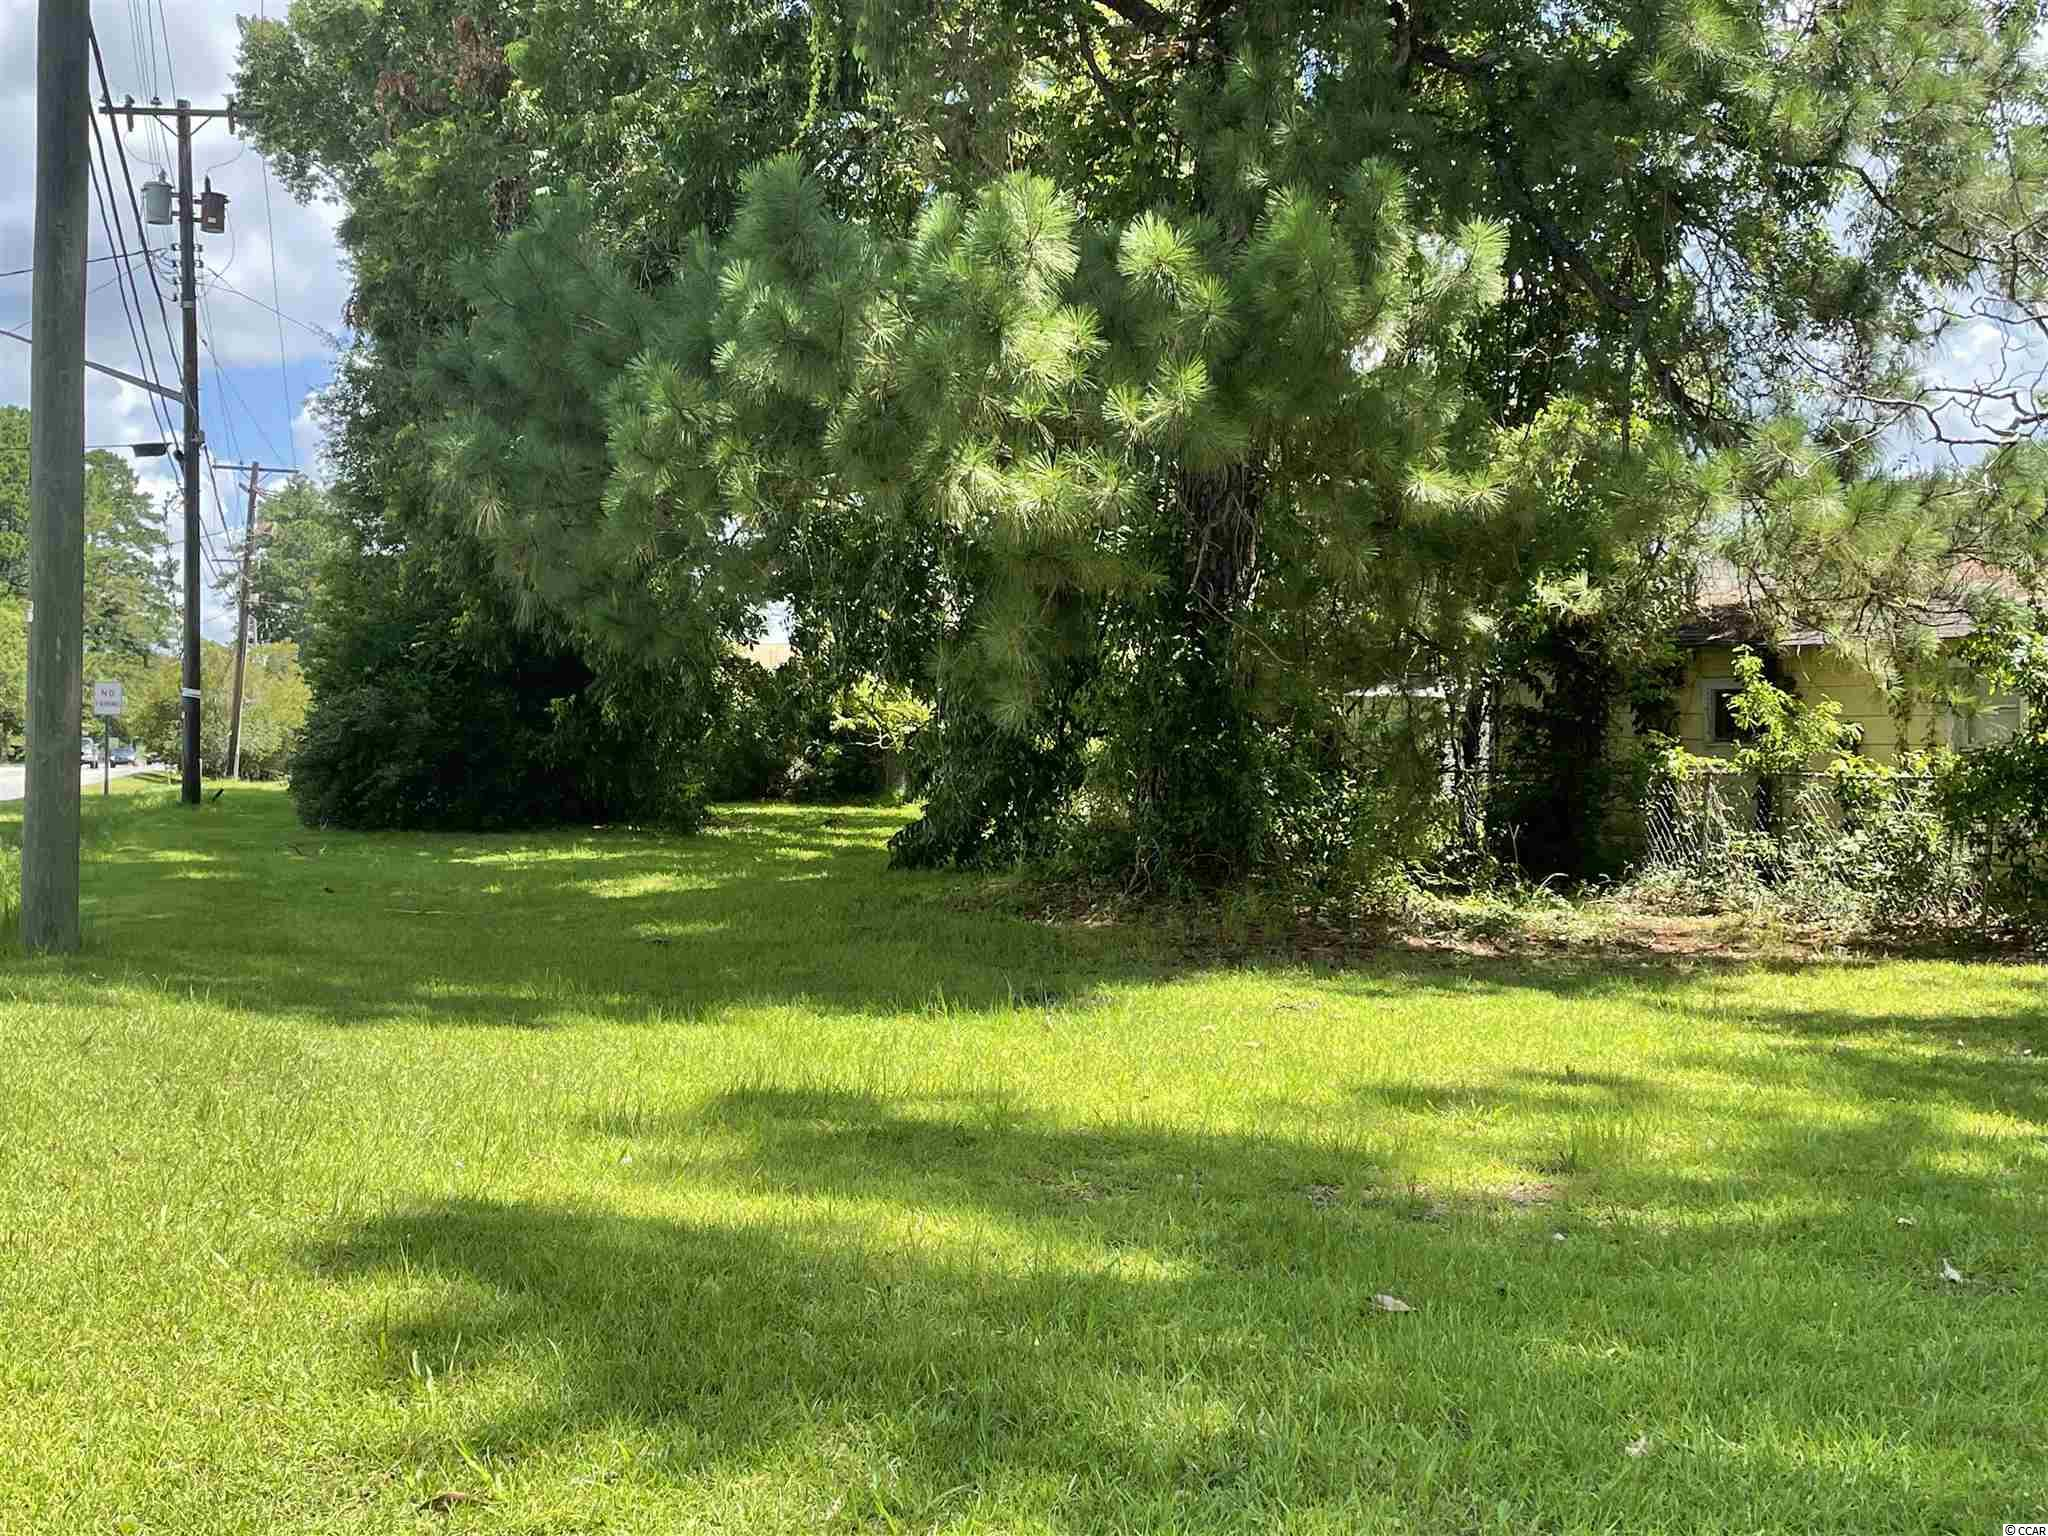 If you have been looking to build your new home in the Historical Waterfront City of Georgetown, SC. This residential lot is ready for a foundation! Just about 2.5 miles from the historic waterfront downtown area of Georgetown, SC build your new home here, and enjoy all of the history and culture of Georgetown, SC which is the third oldest city in South Carolina. This is an opportunity you don't want to miss.